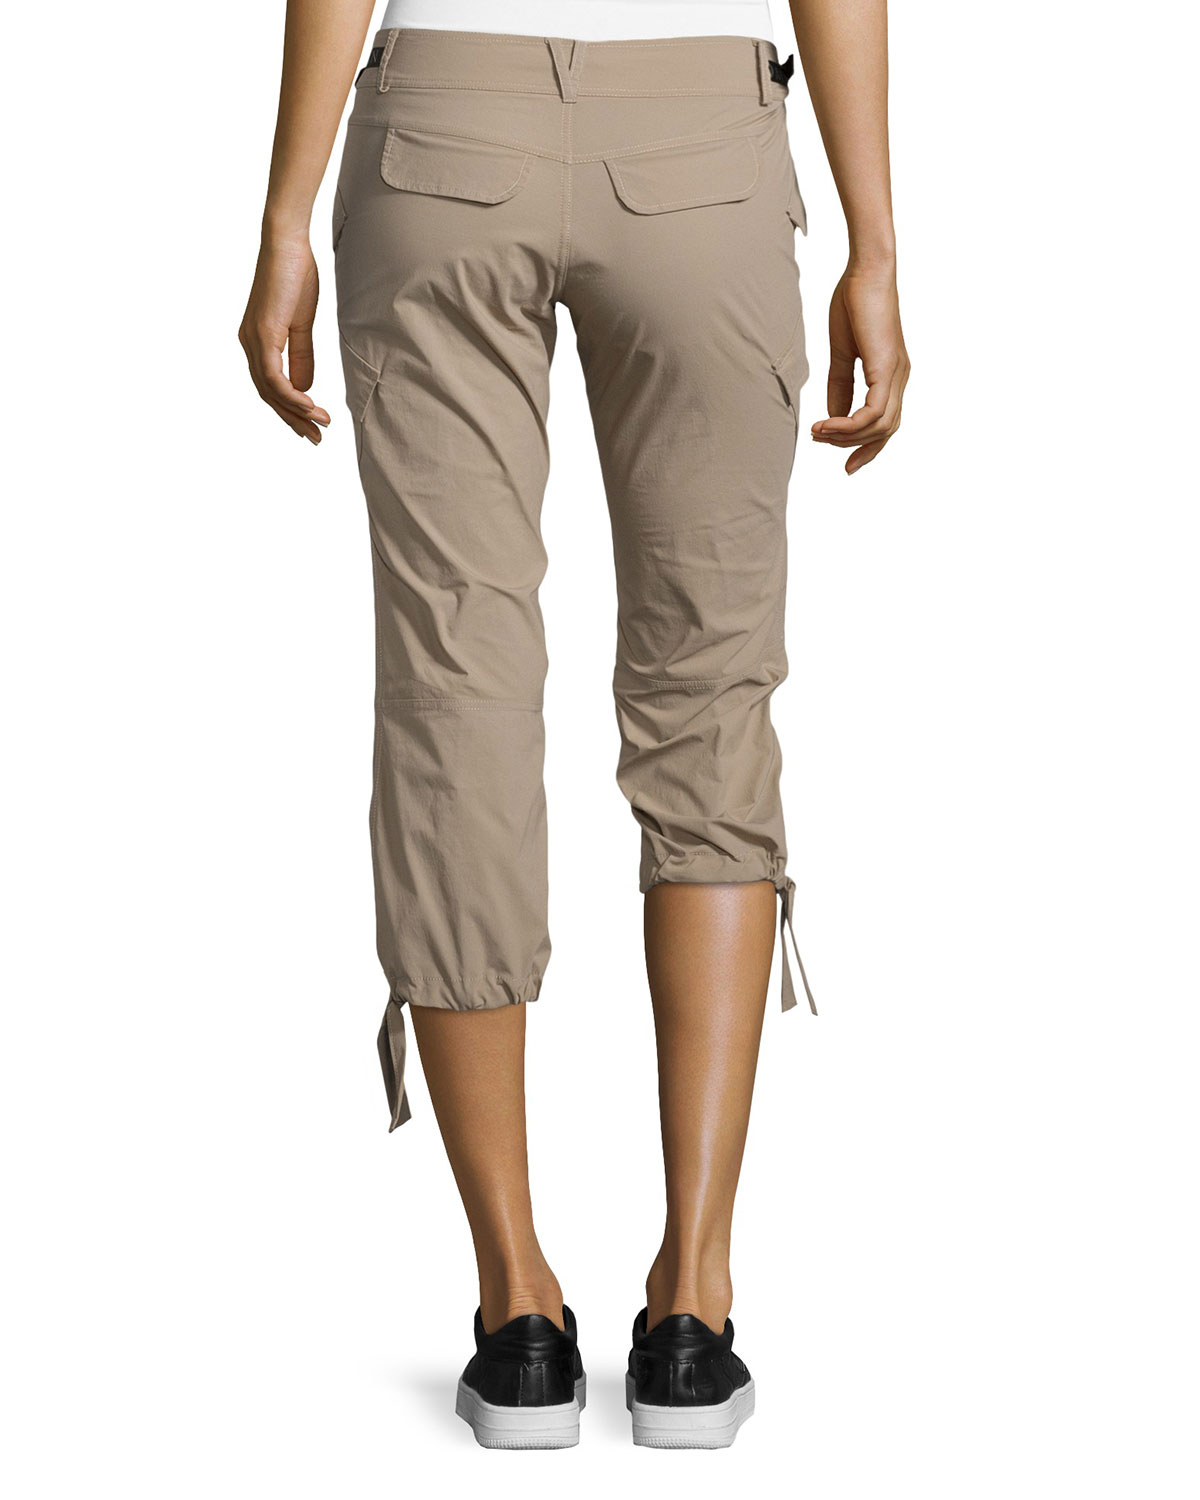 Lyst - Anatomie Low-Rise Cargo Capri Pants in Natural